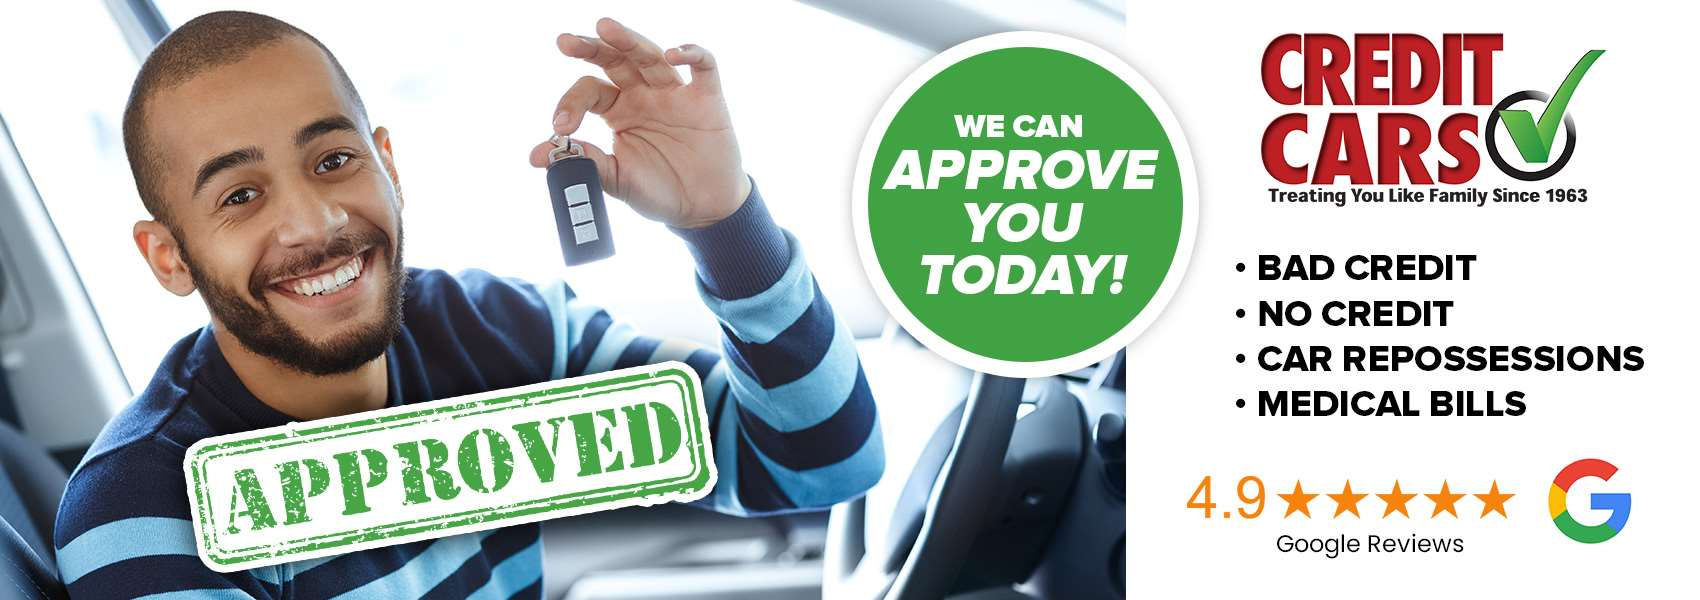 We can approve you today!